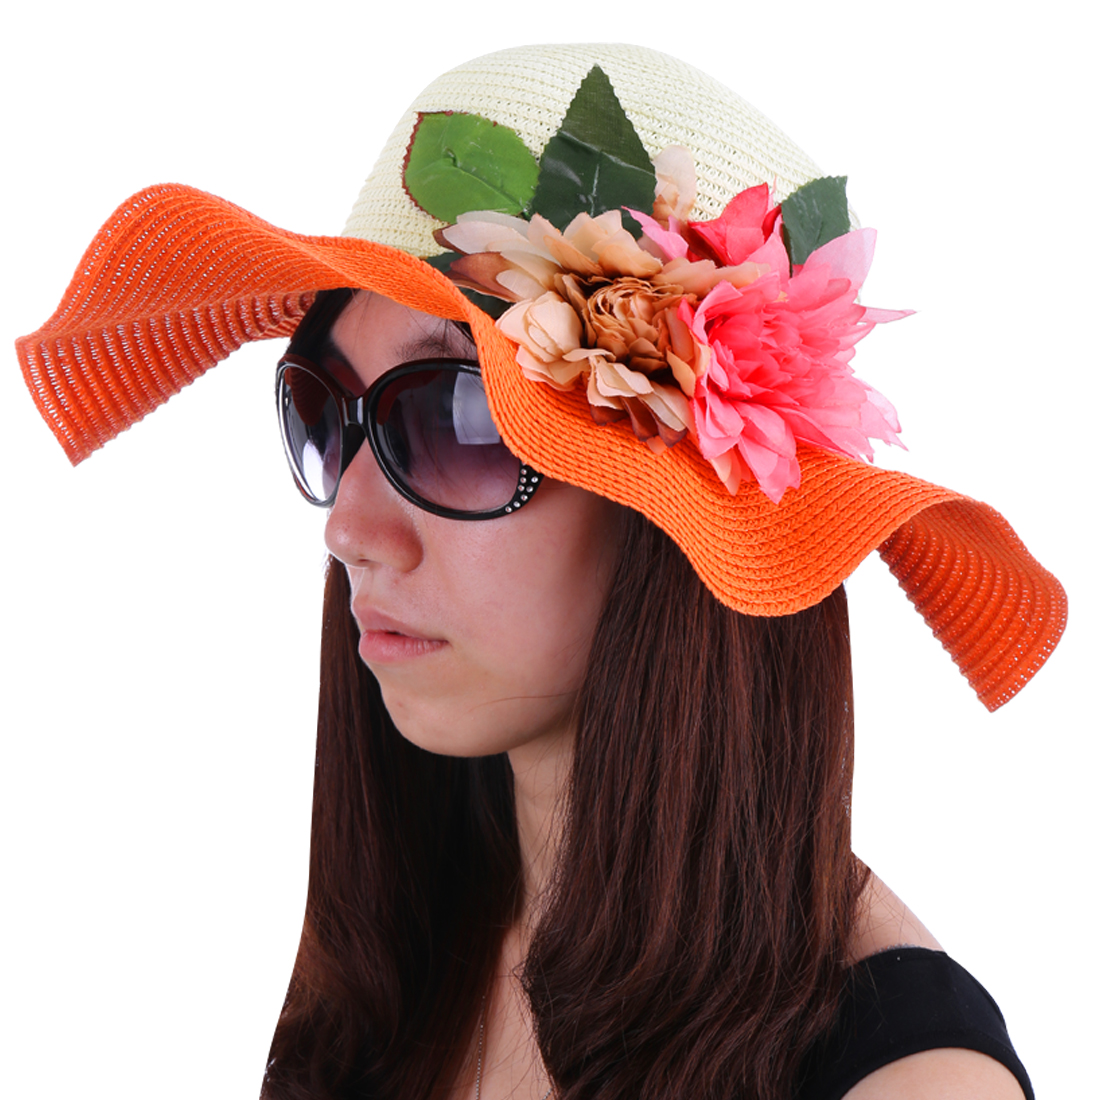 Women Round Brim Flower Decor Beach Sun Hat Orange White